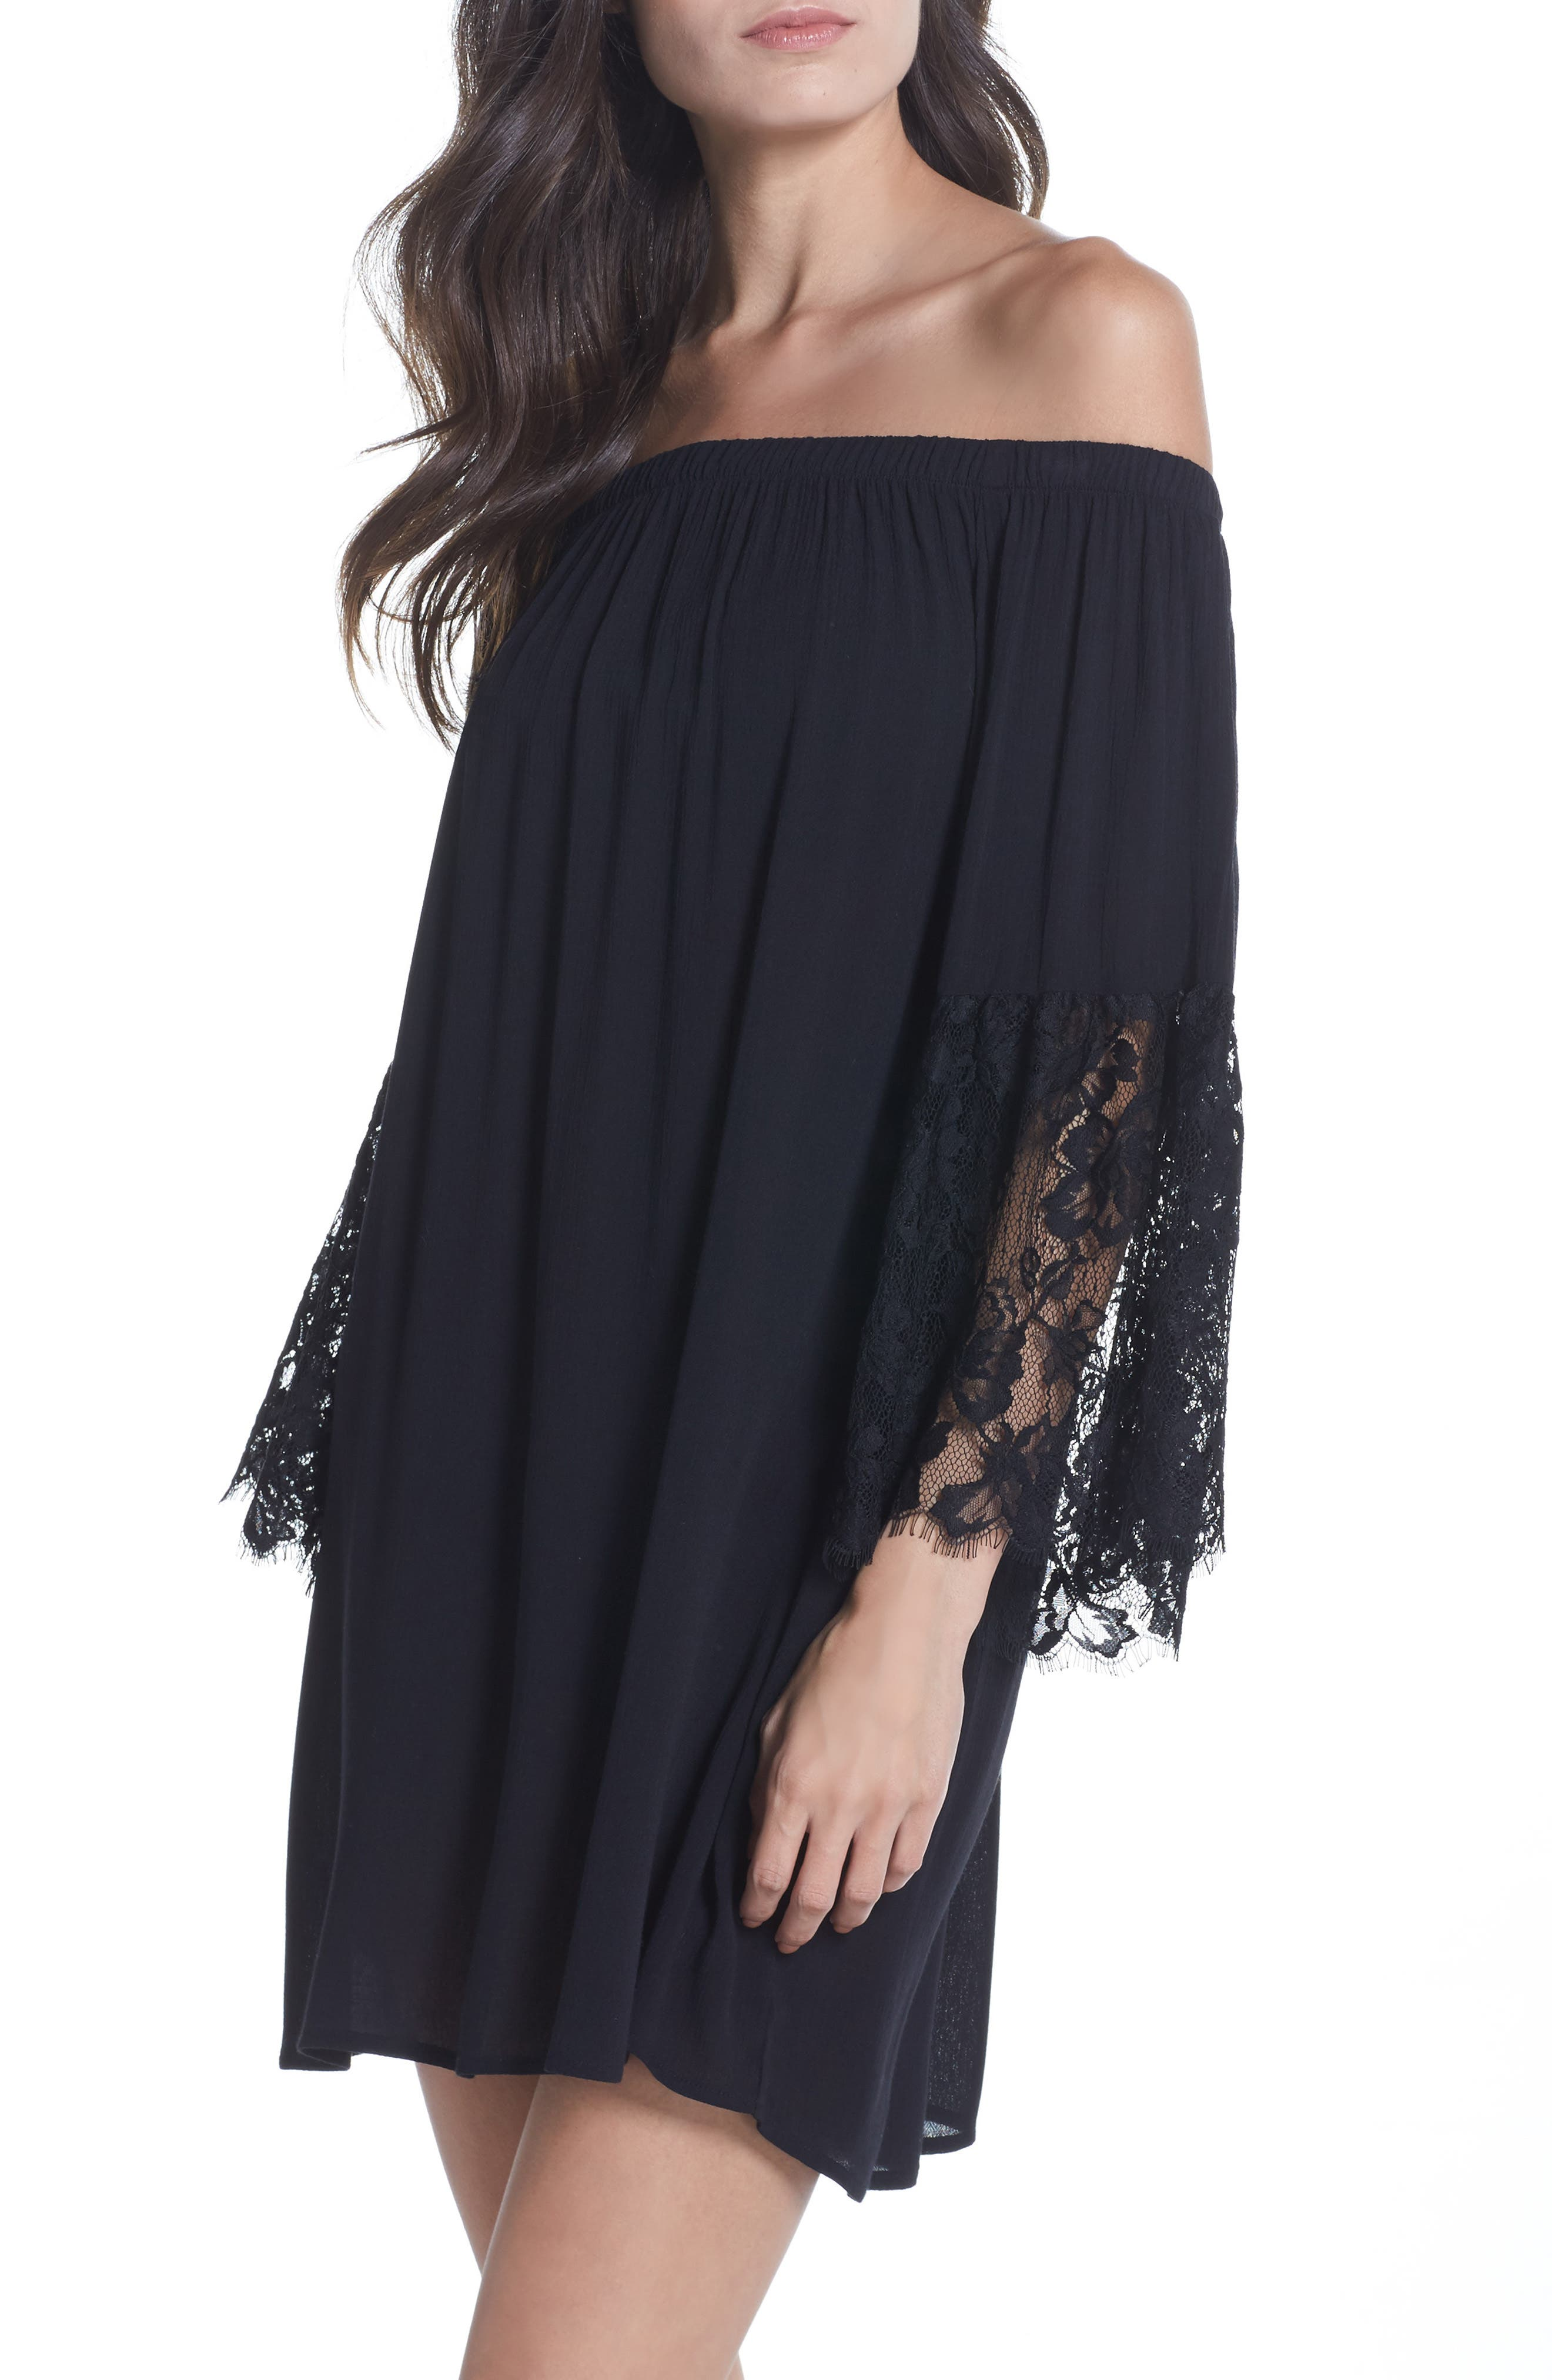 Off the Shoulder Cover-Up Dress,                             Main thumbnail 1, color,                             001